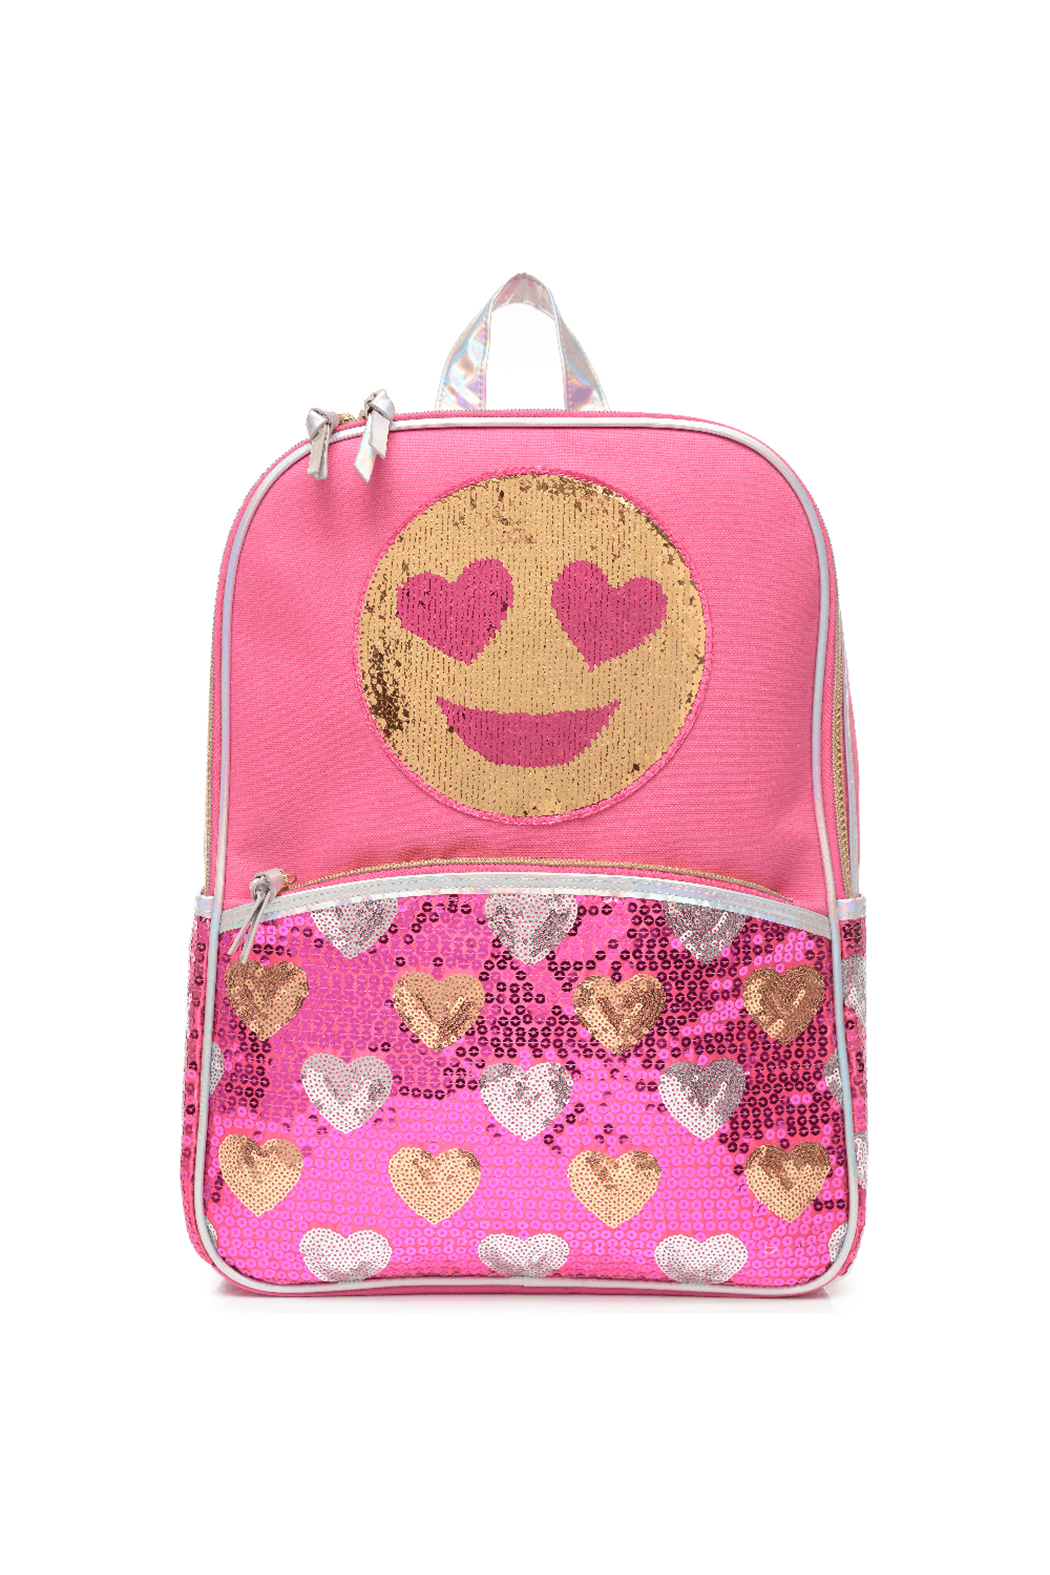 Me Oui Reversible Sequins Emoji Backpack - Main Image